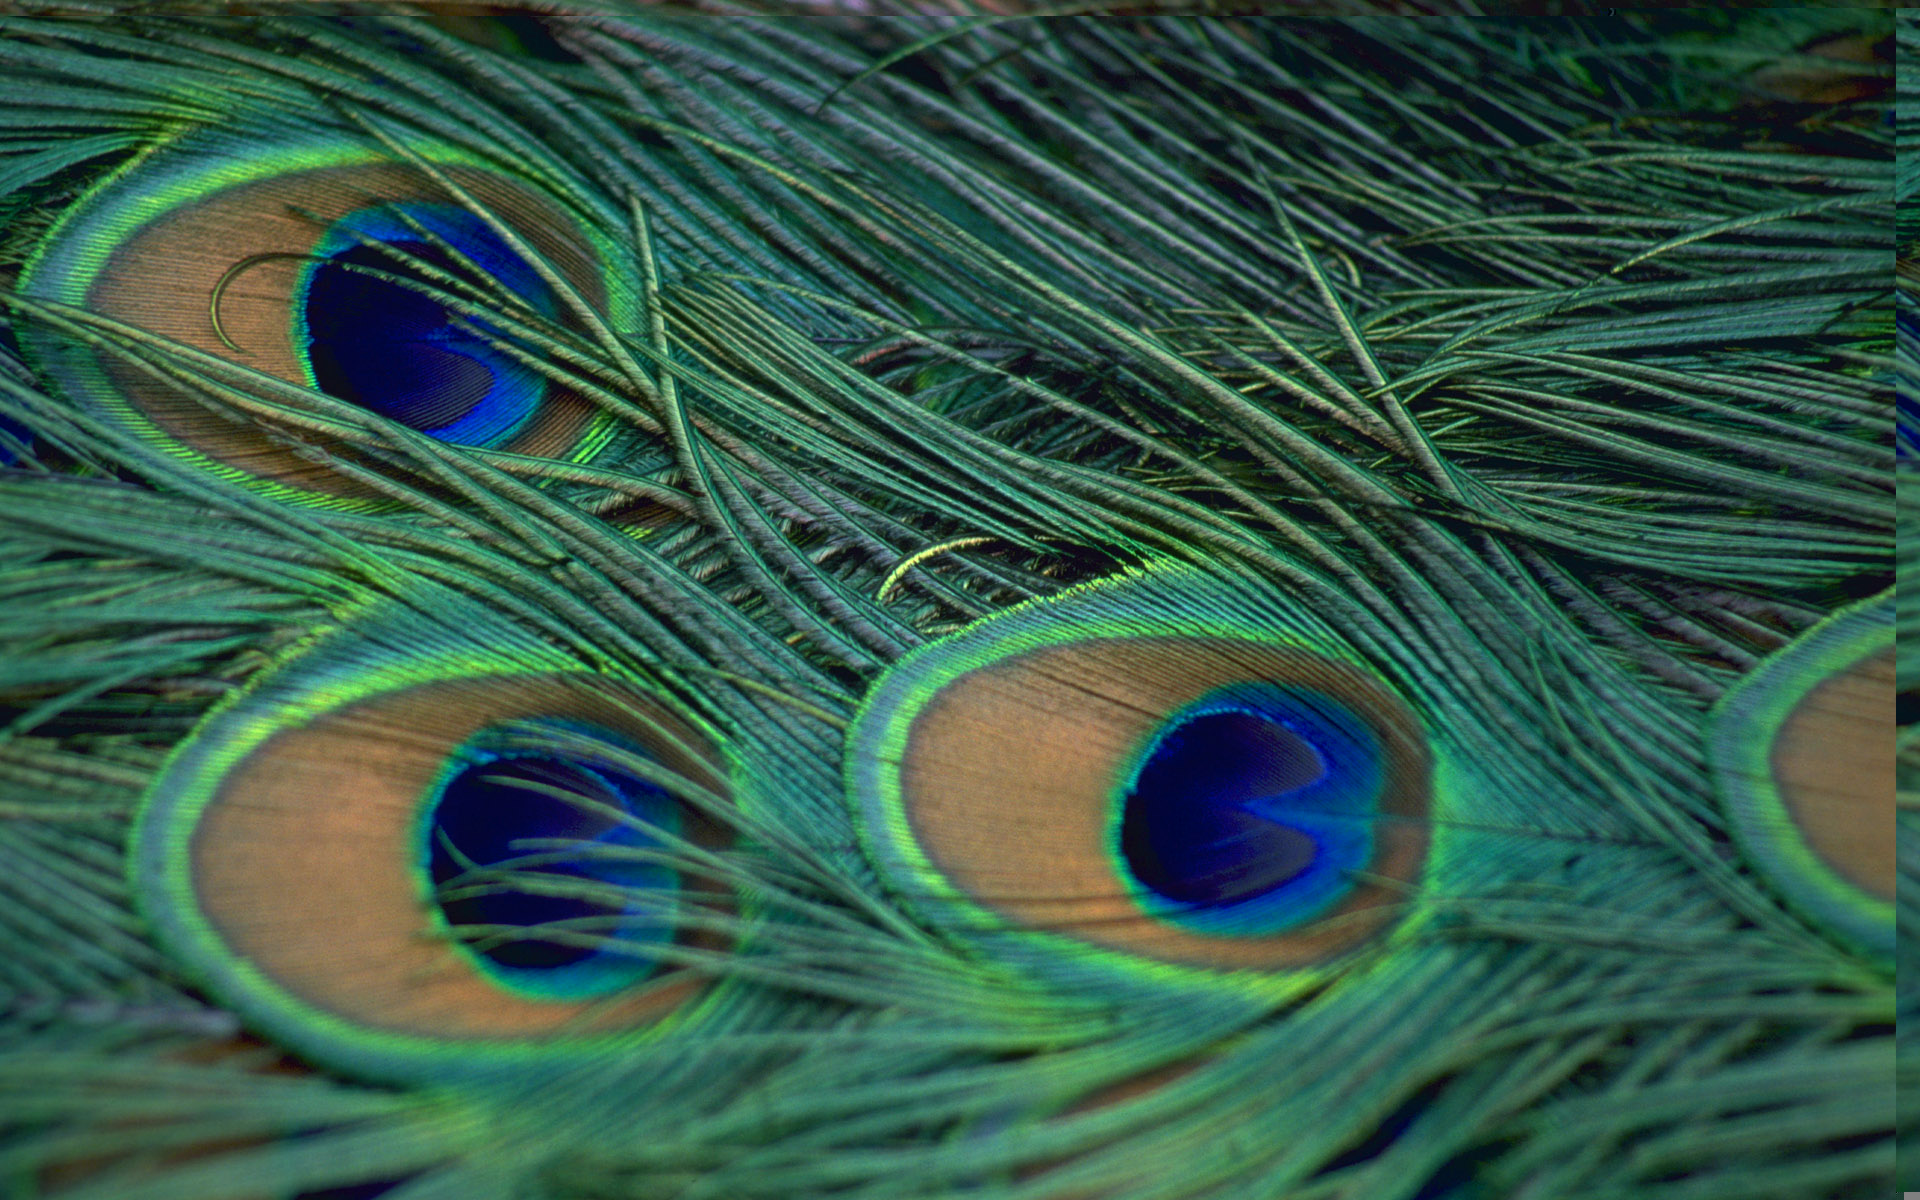 peacock wallpapers for desktop background